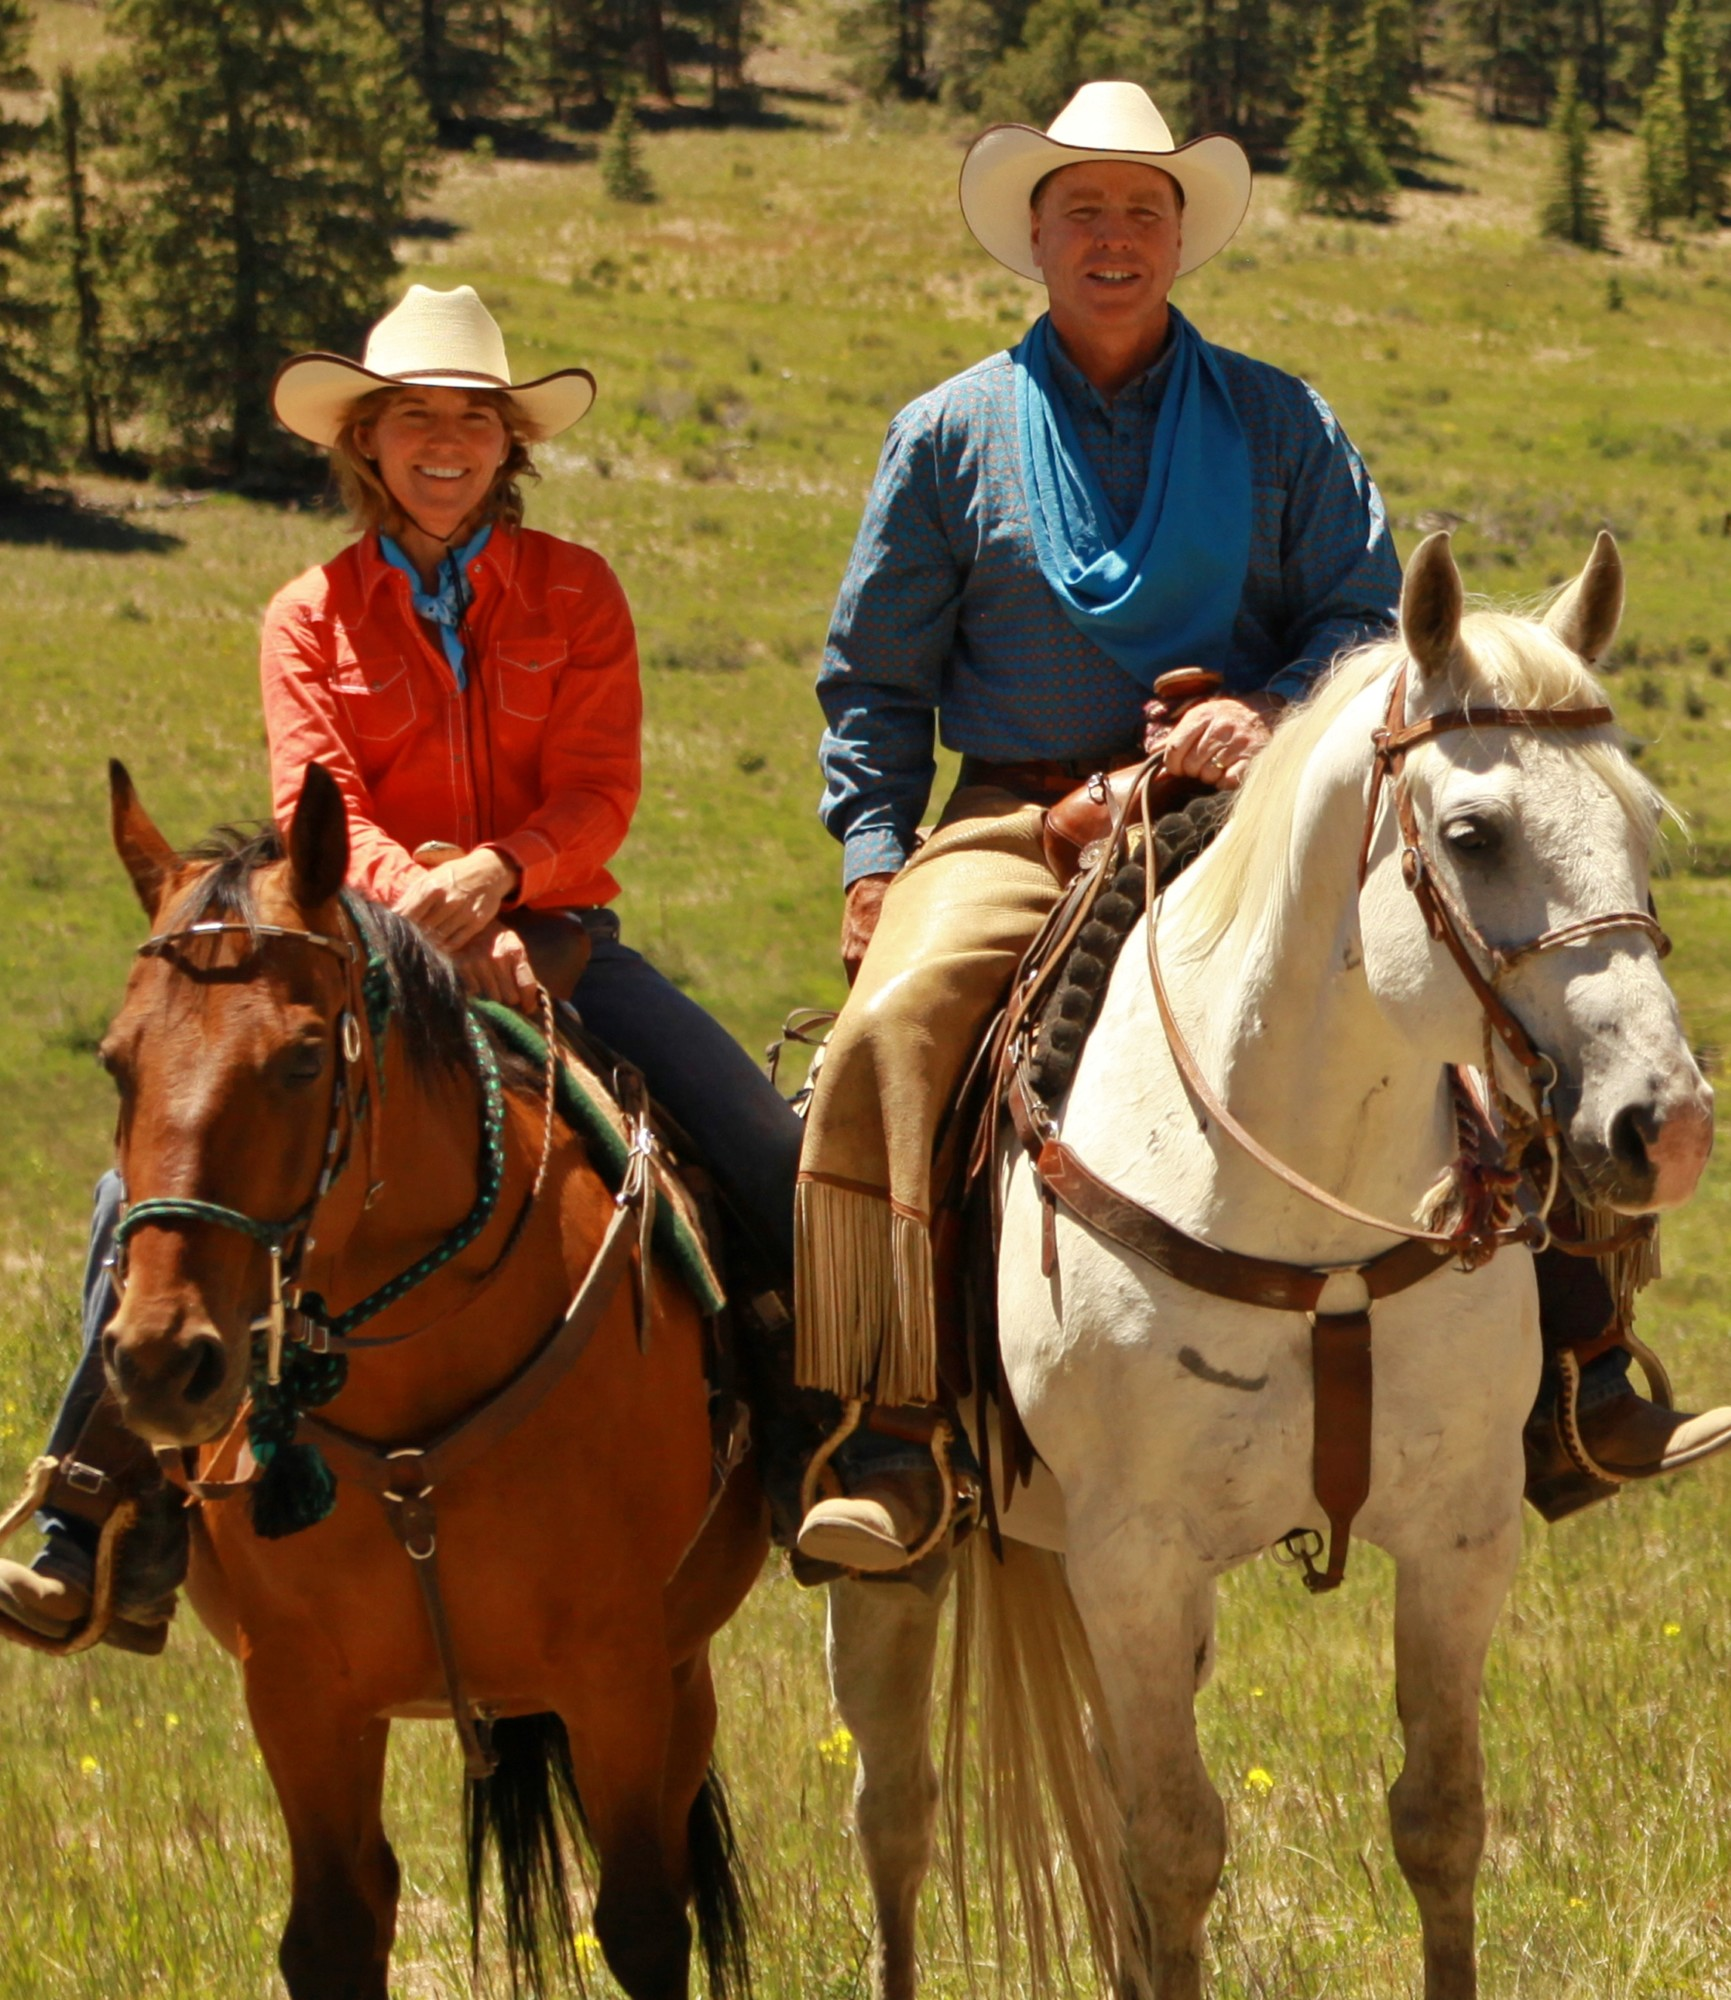 Tom and Sue on horseback